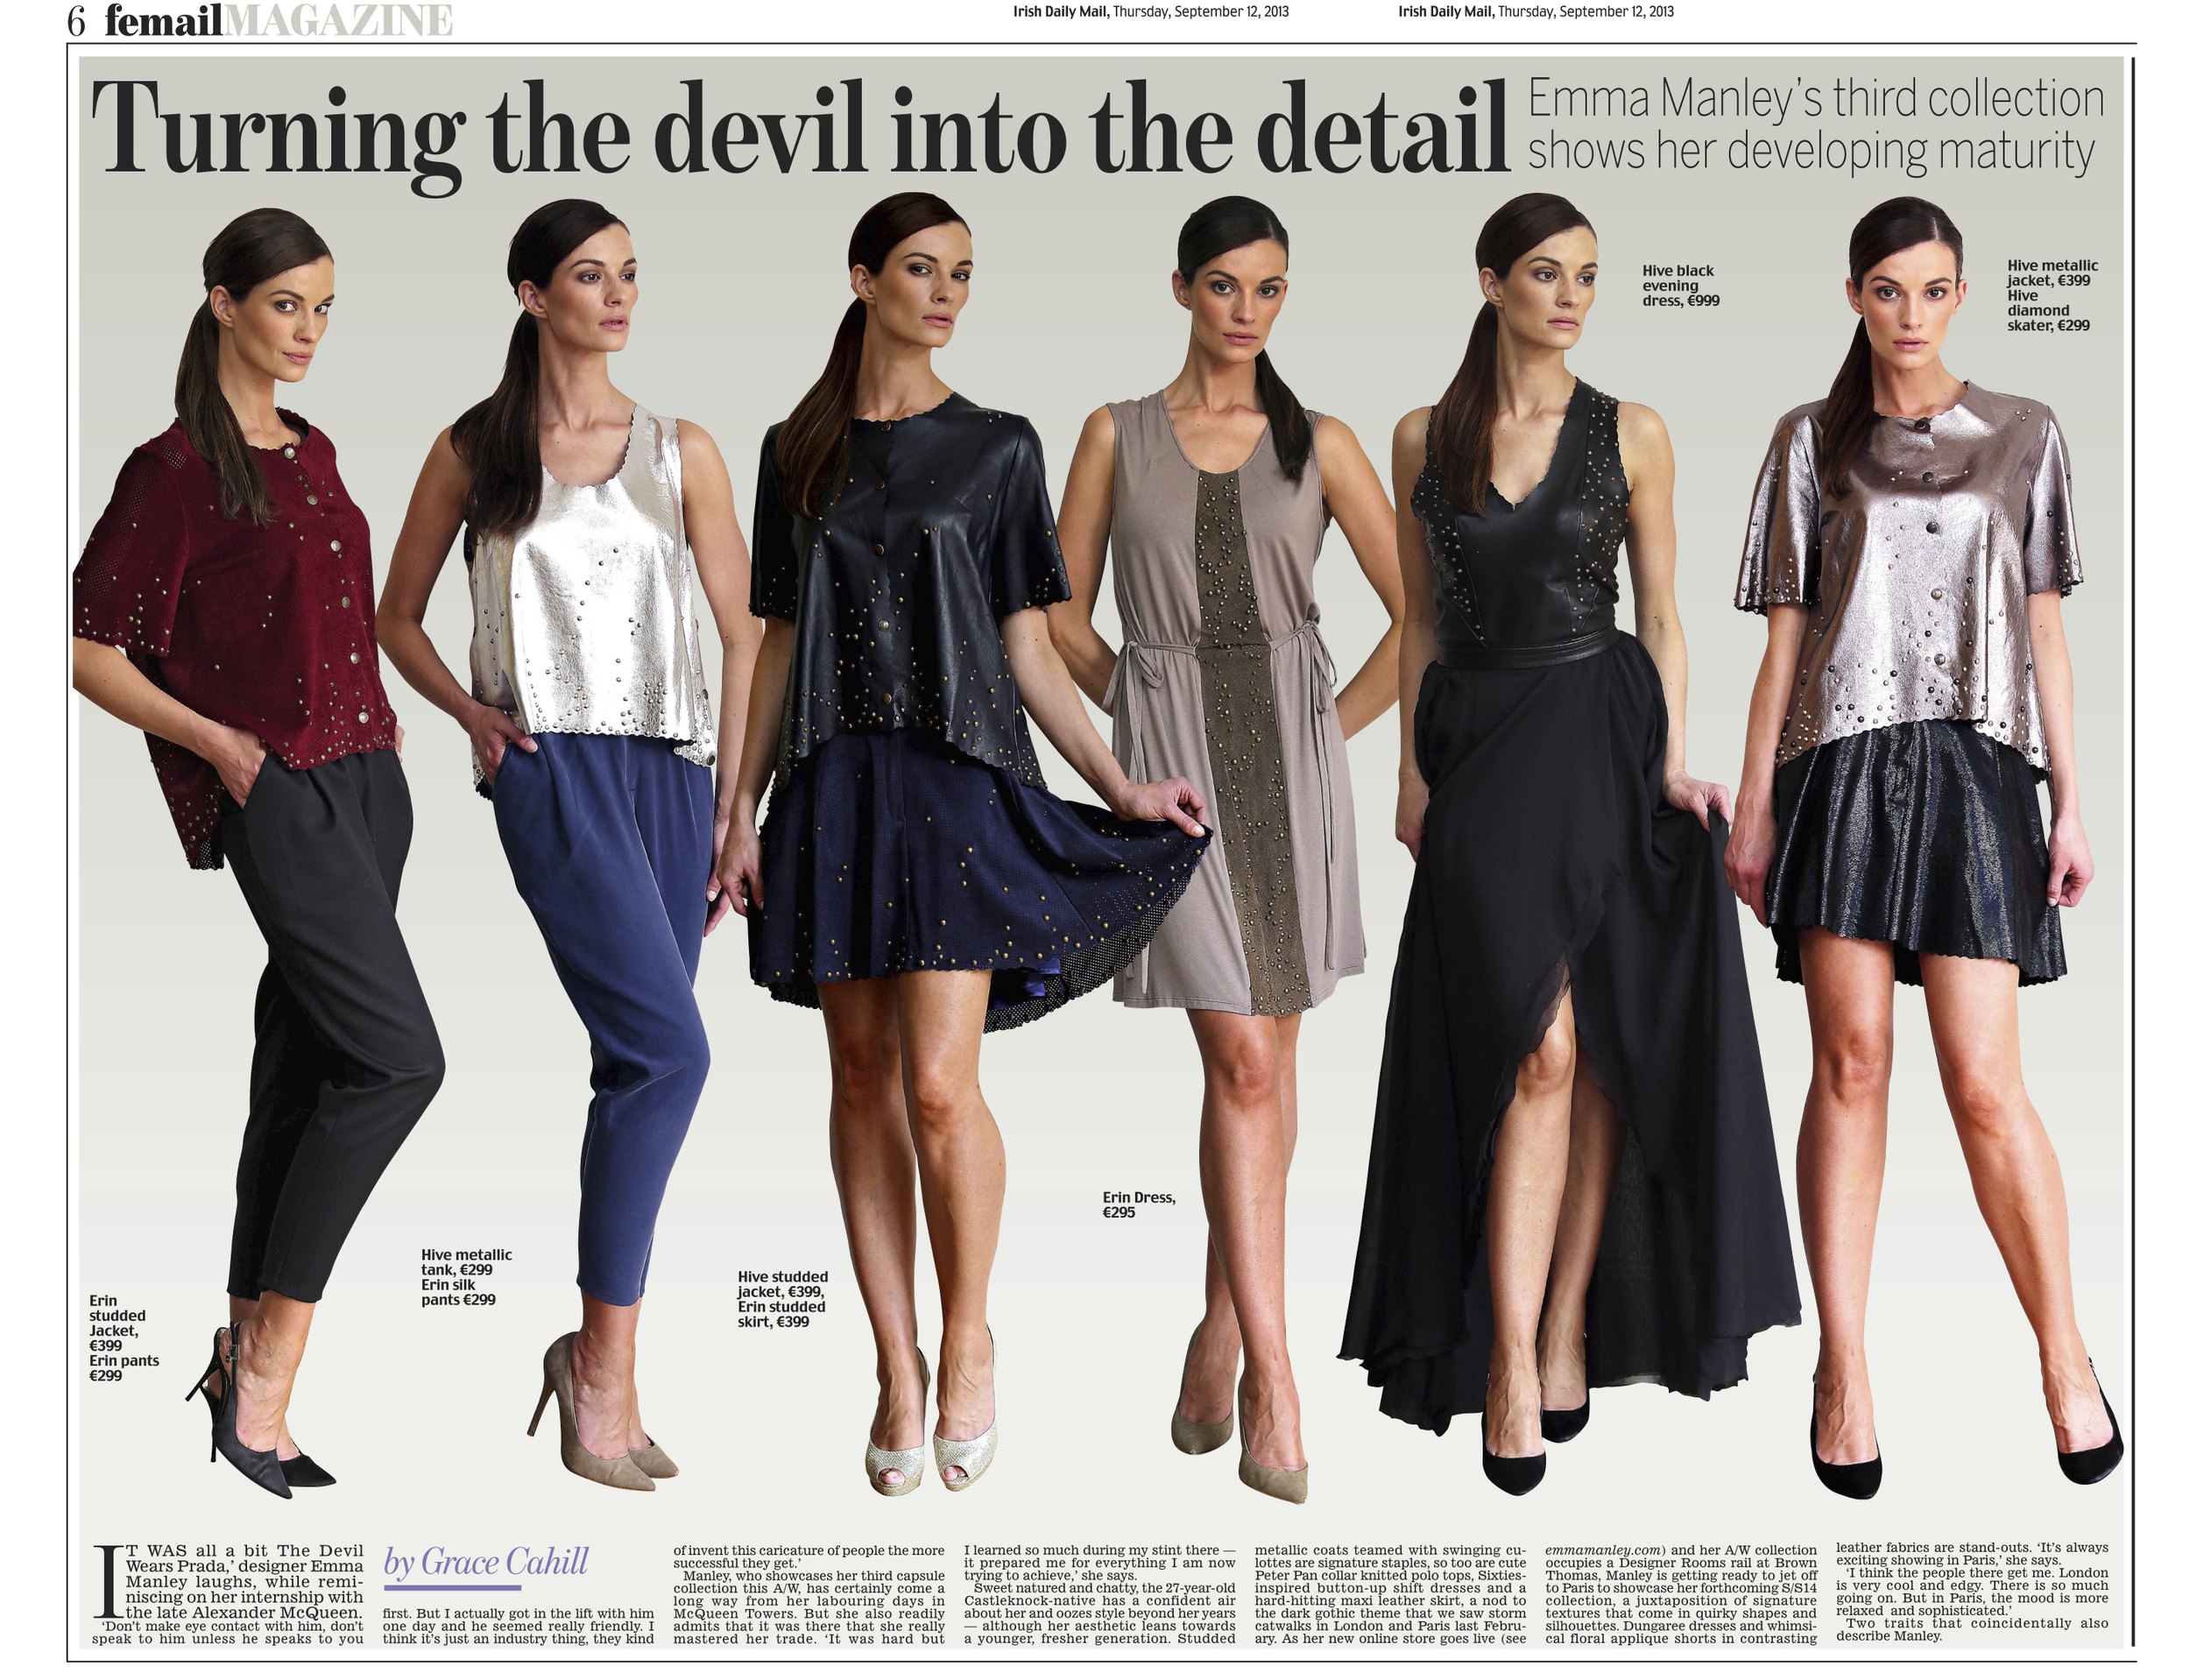 Daily Mail Sept 2013